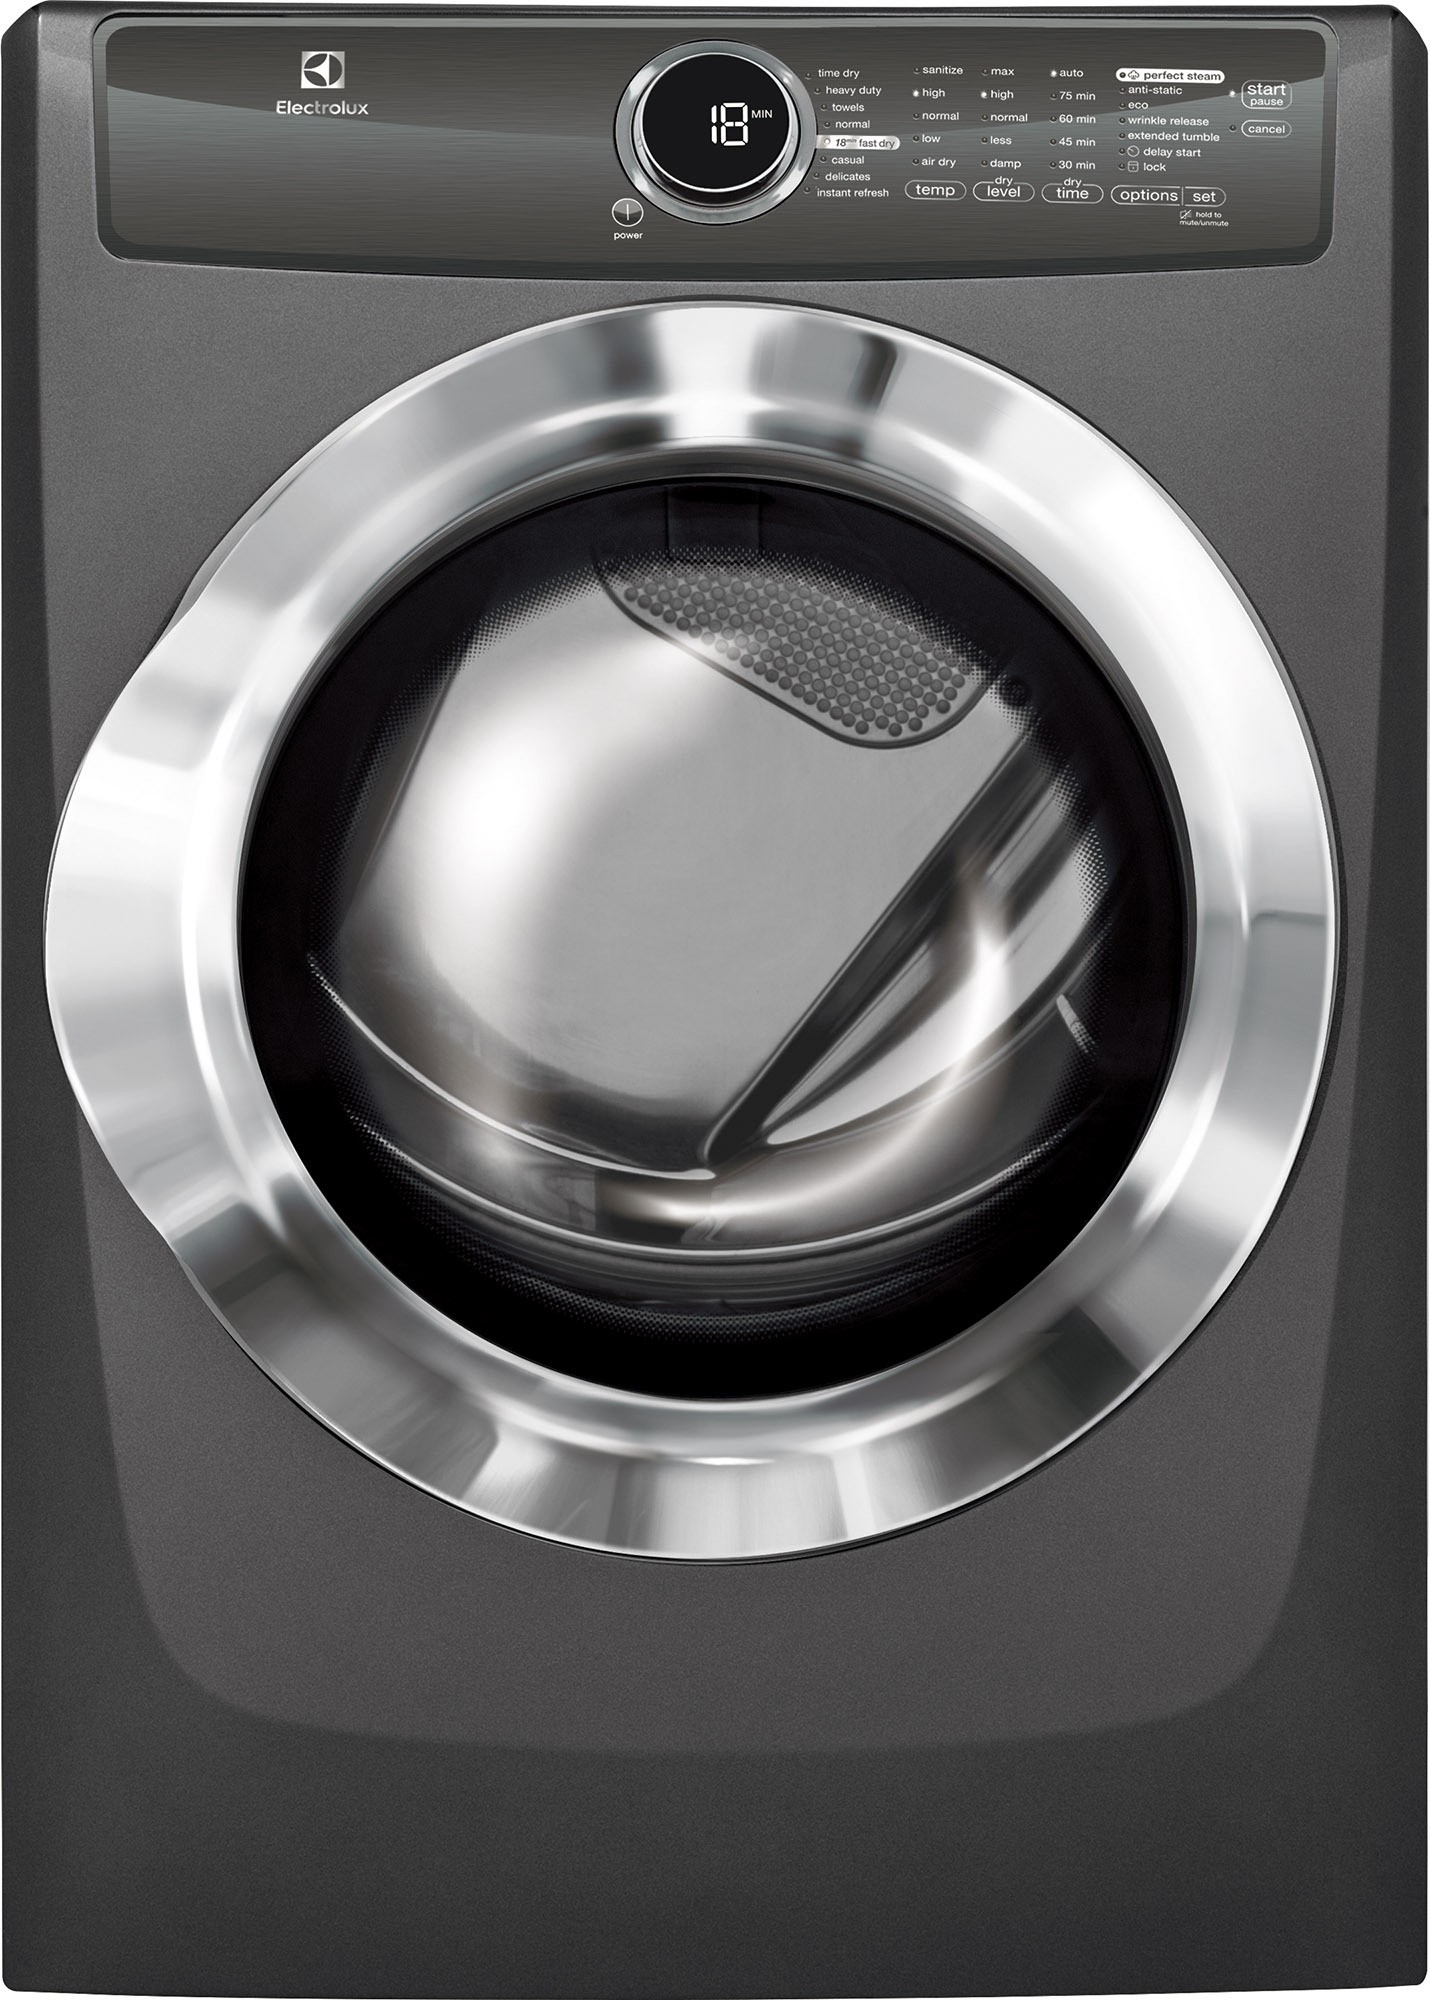 open doors electrolux washing design washer amana pedestal machine white leaking gorgeous whirpool wont for ideas with looks load front great door